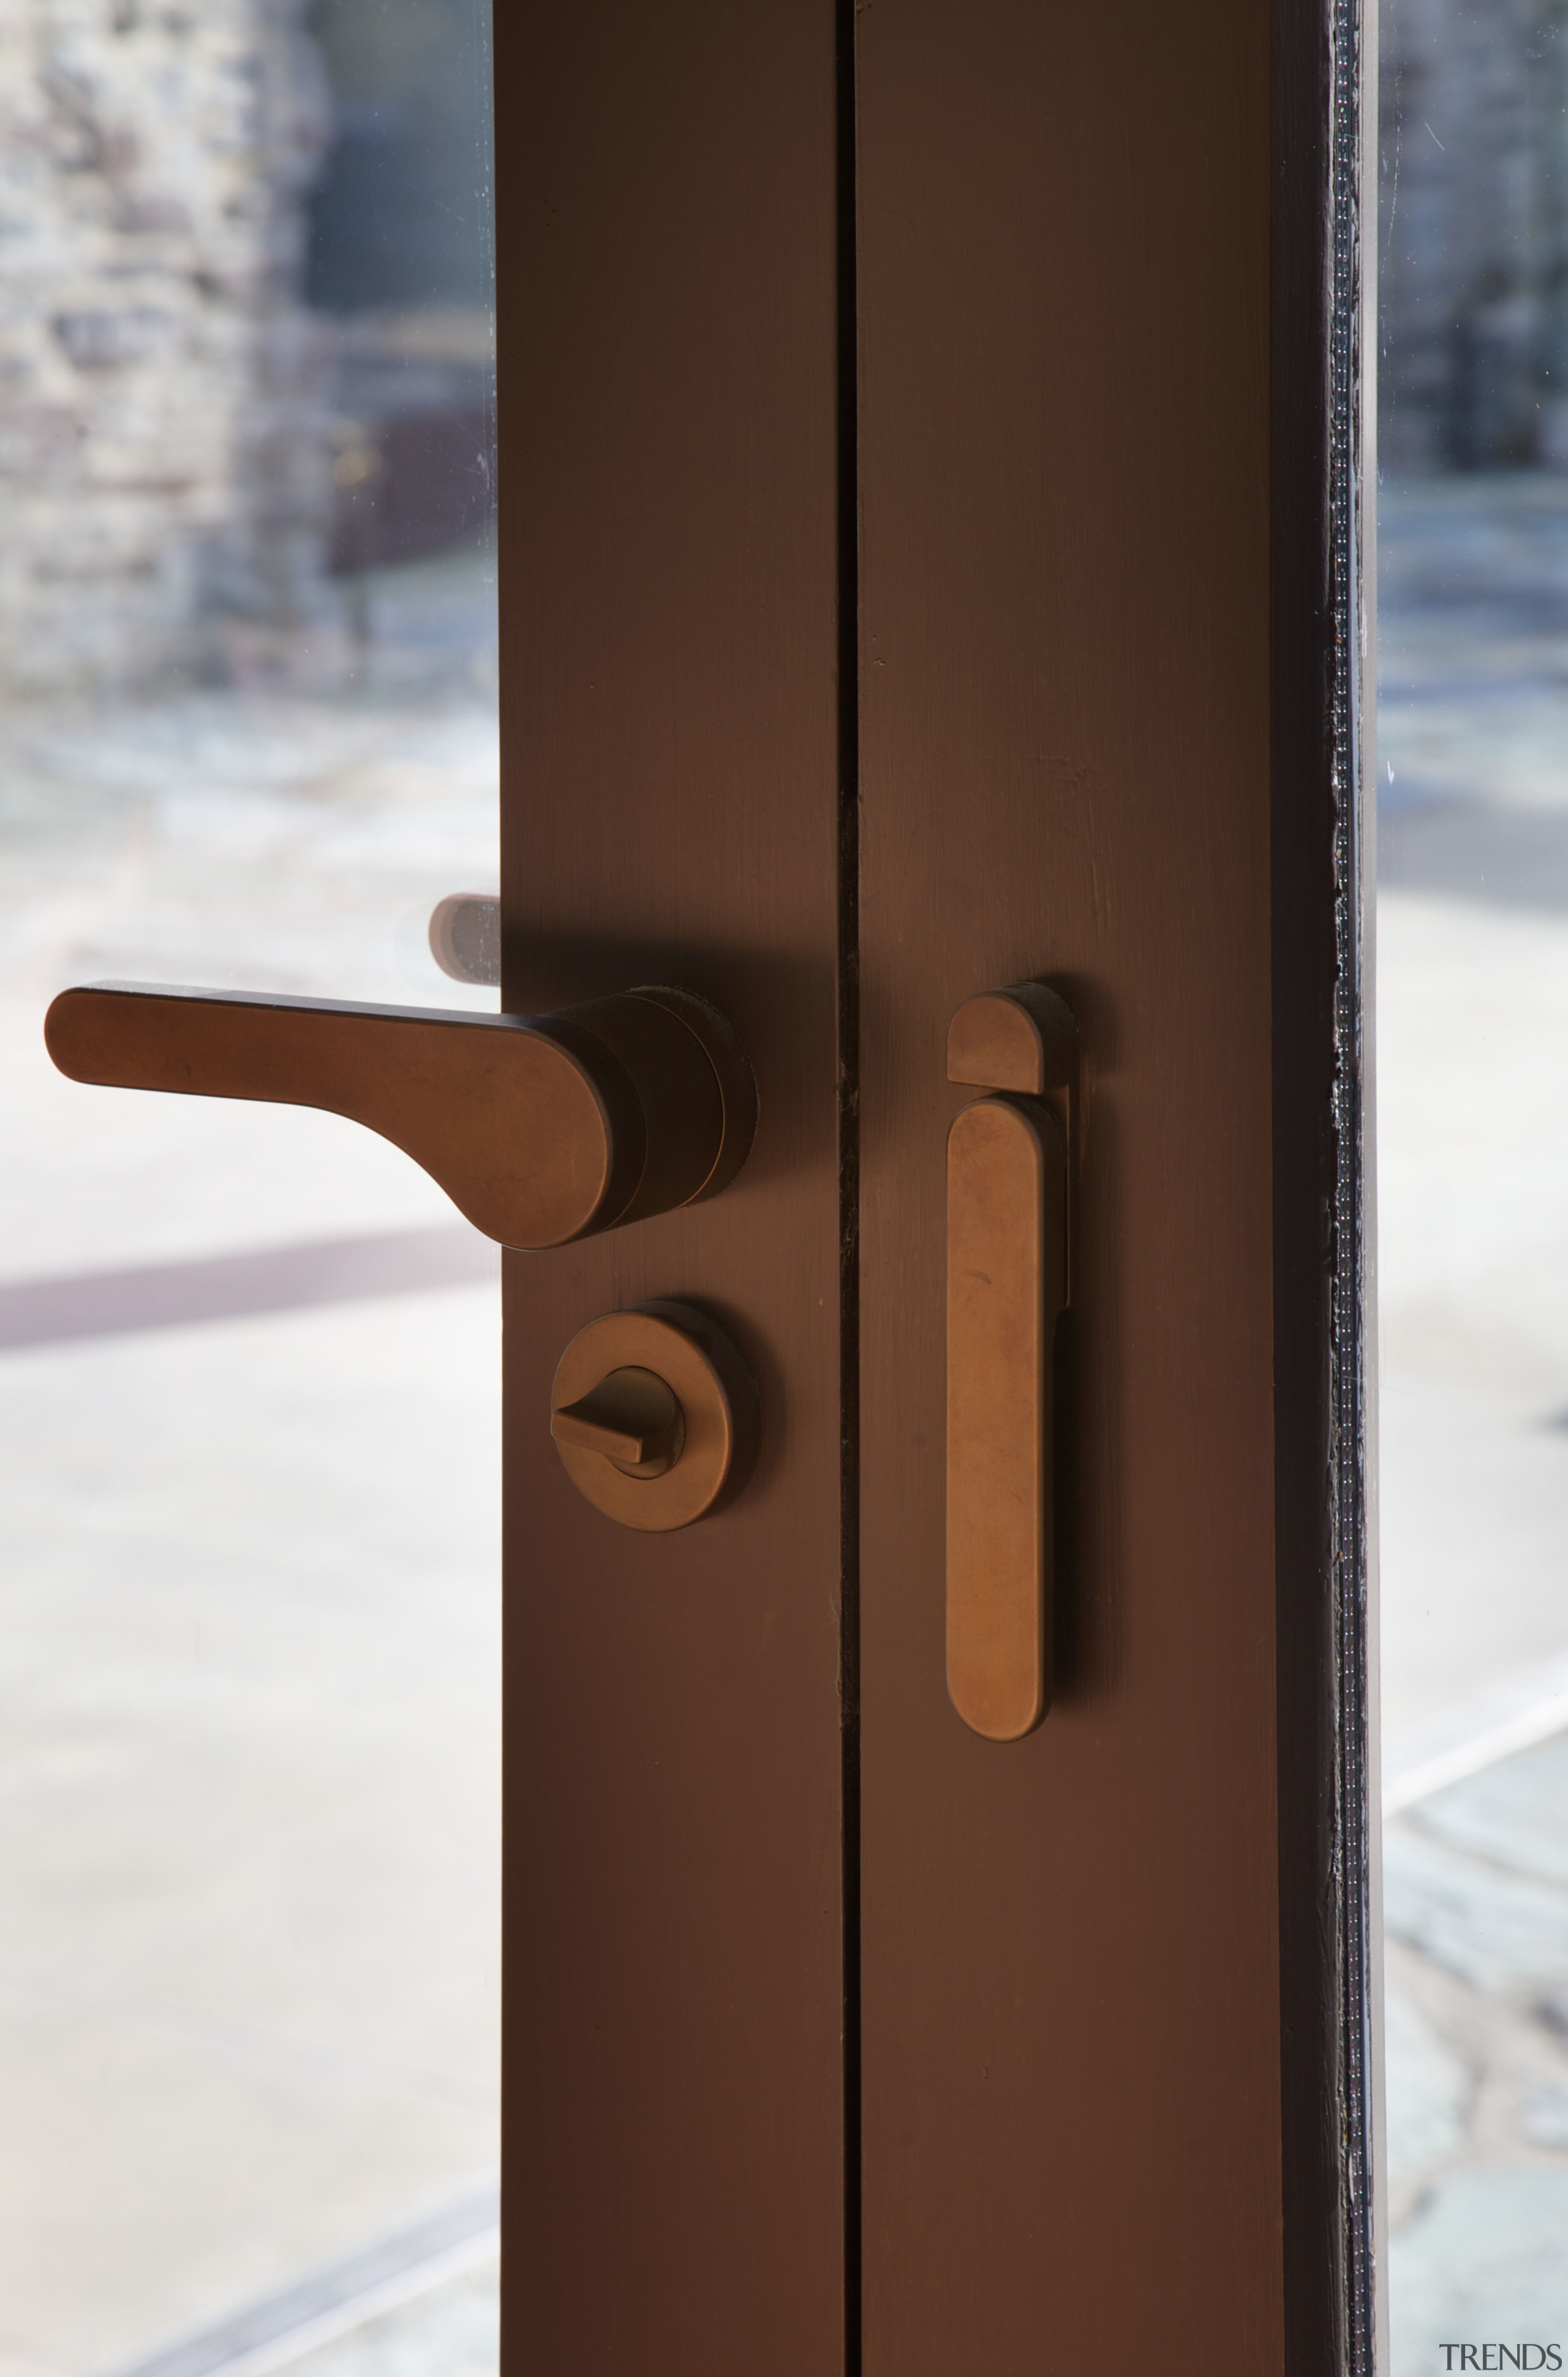 This French door handle in weathered bronze dark product design, wood, brown, white